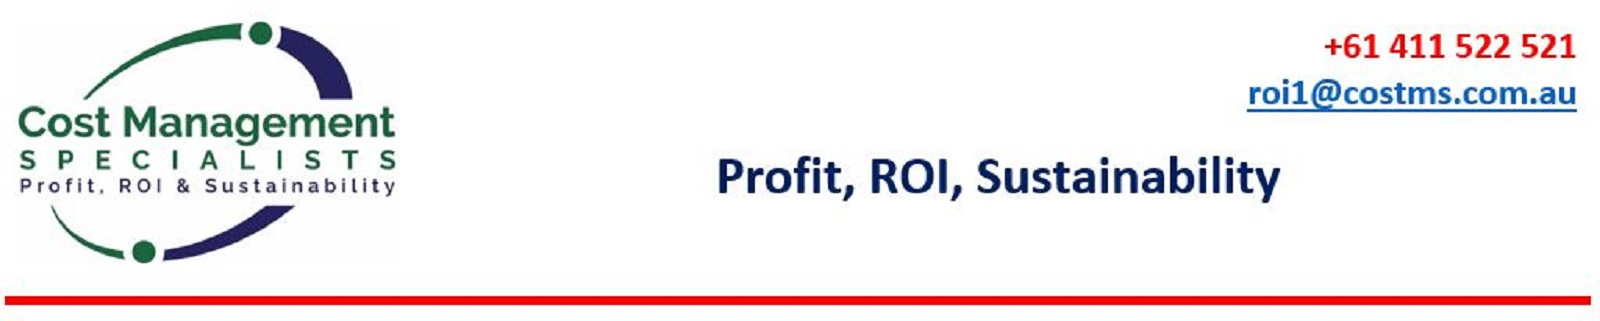 Cost Management Specialists - Profit, ROI, Sustainability